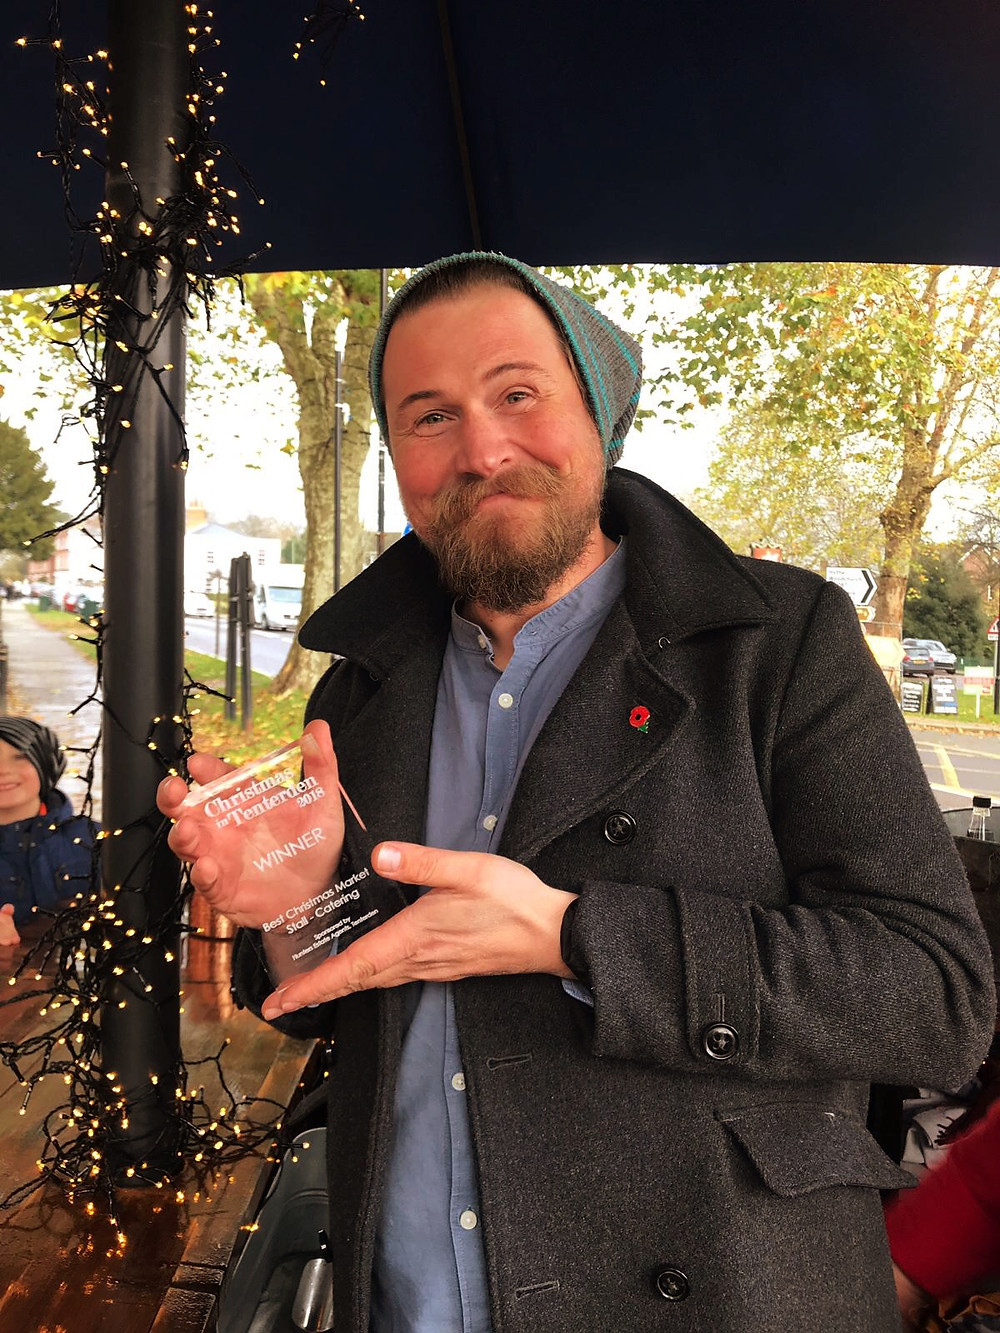 Oliver with the Chin Chin award for Best Christmas Market Catering Stall at Christmas in Tenterden 2018